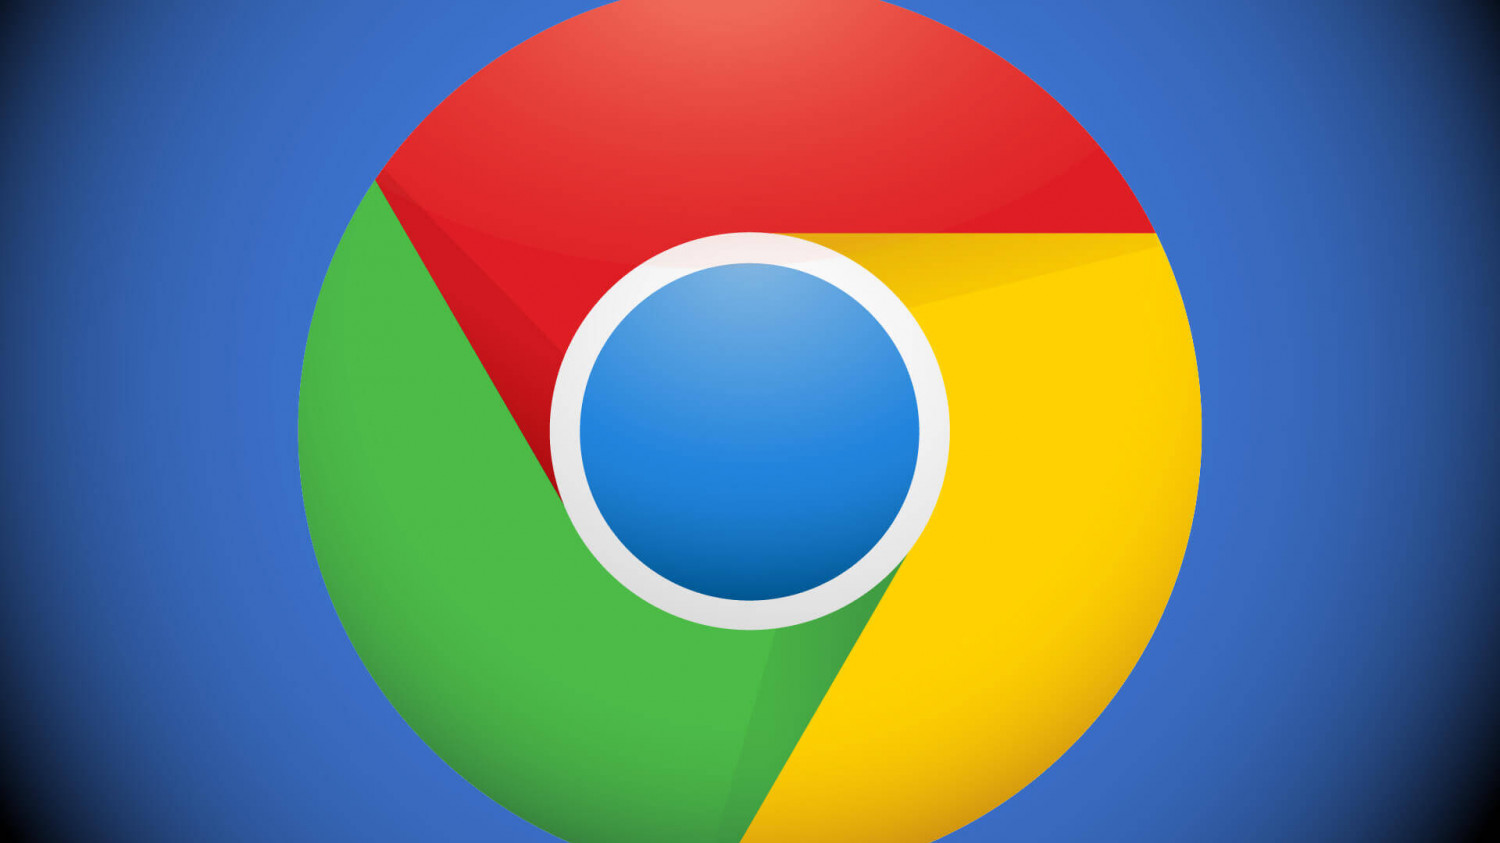 """Guide to Fixing Error """"Expired DigiCert Certificate"""" on Google Chrome Infographic"""